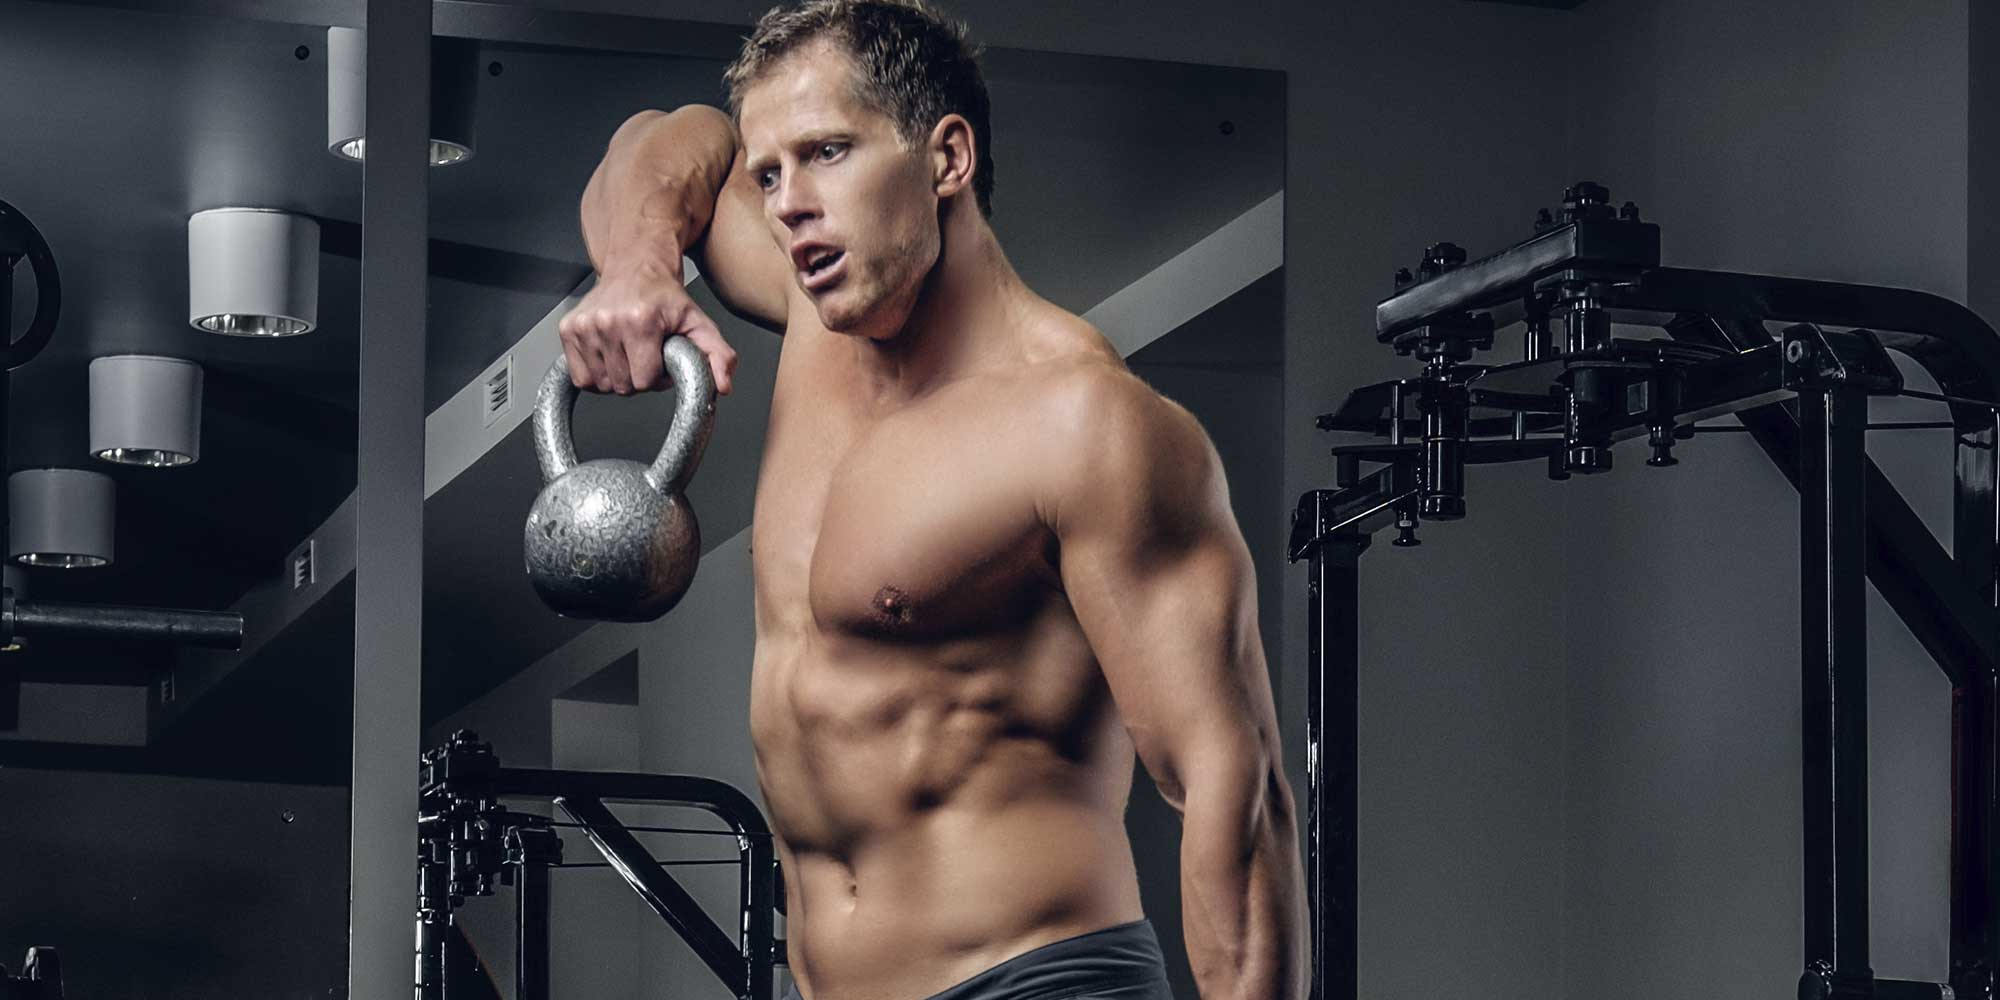 How To Get Boulders For Shoulders